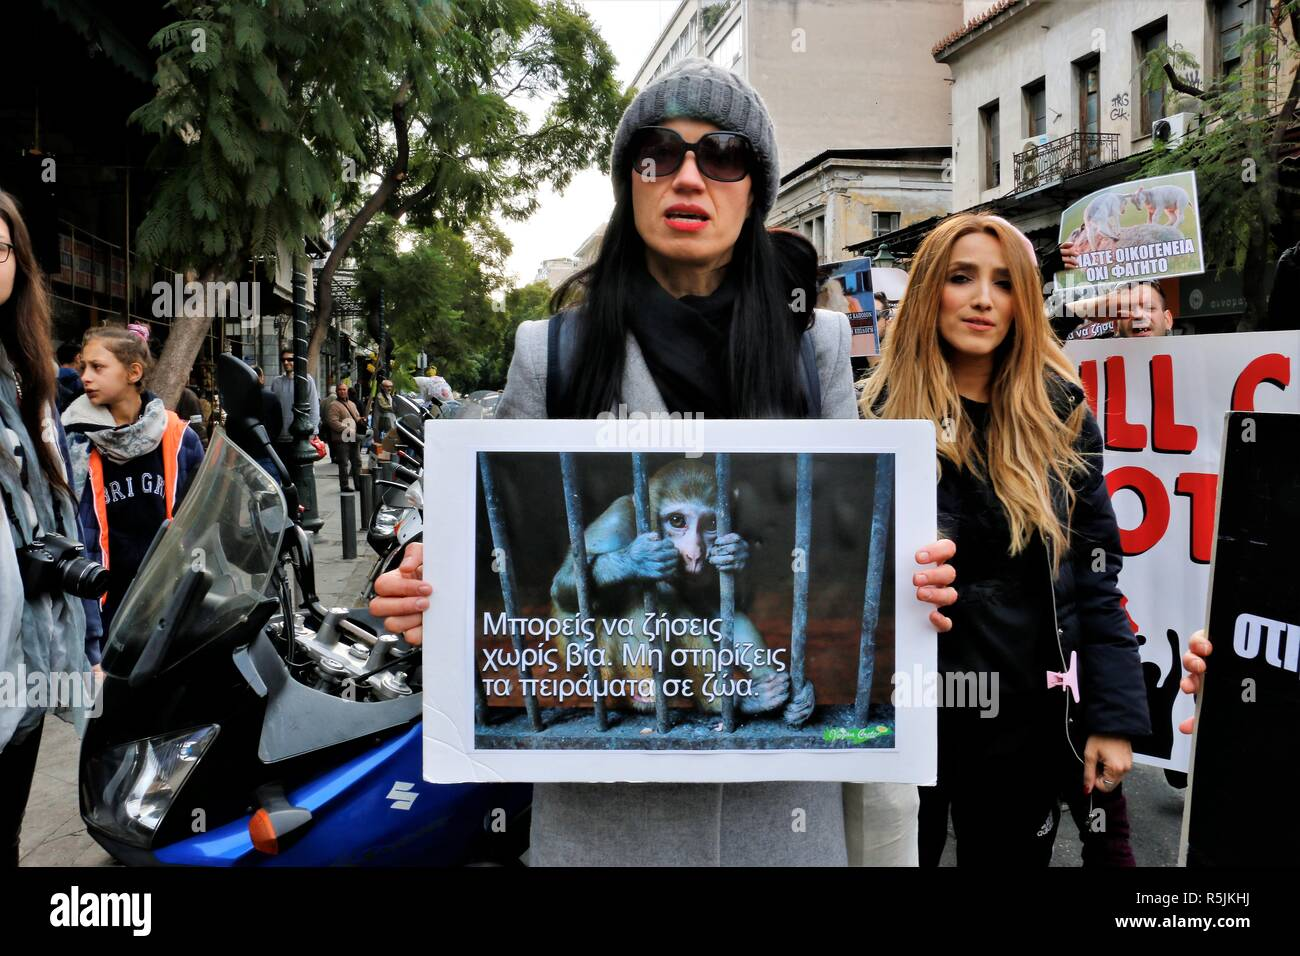 Athens, Greece. 1st Dec, 2018. A protester seen holding a placard during the protest.Animal right activists demonstrate in Athens against animals' abuse, violence, mistreatment towards animals and promoting a vegan way of life. Credit: Helen Paroglou/SOPA Images/ZUMA Wire/Alamy Live News - Stock Image